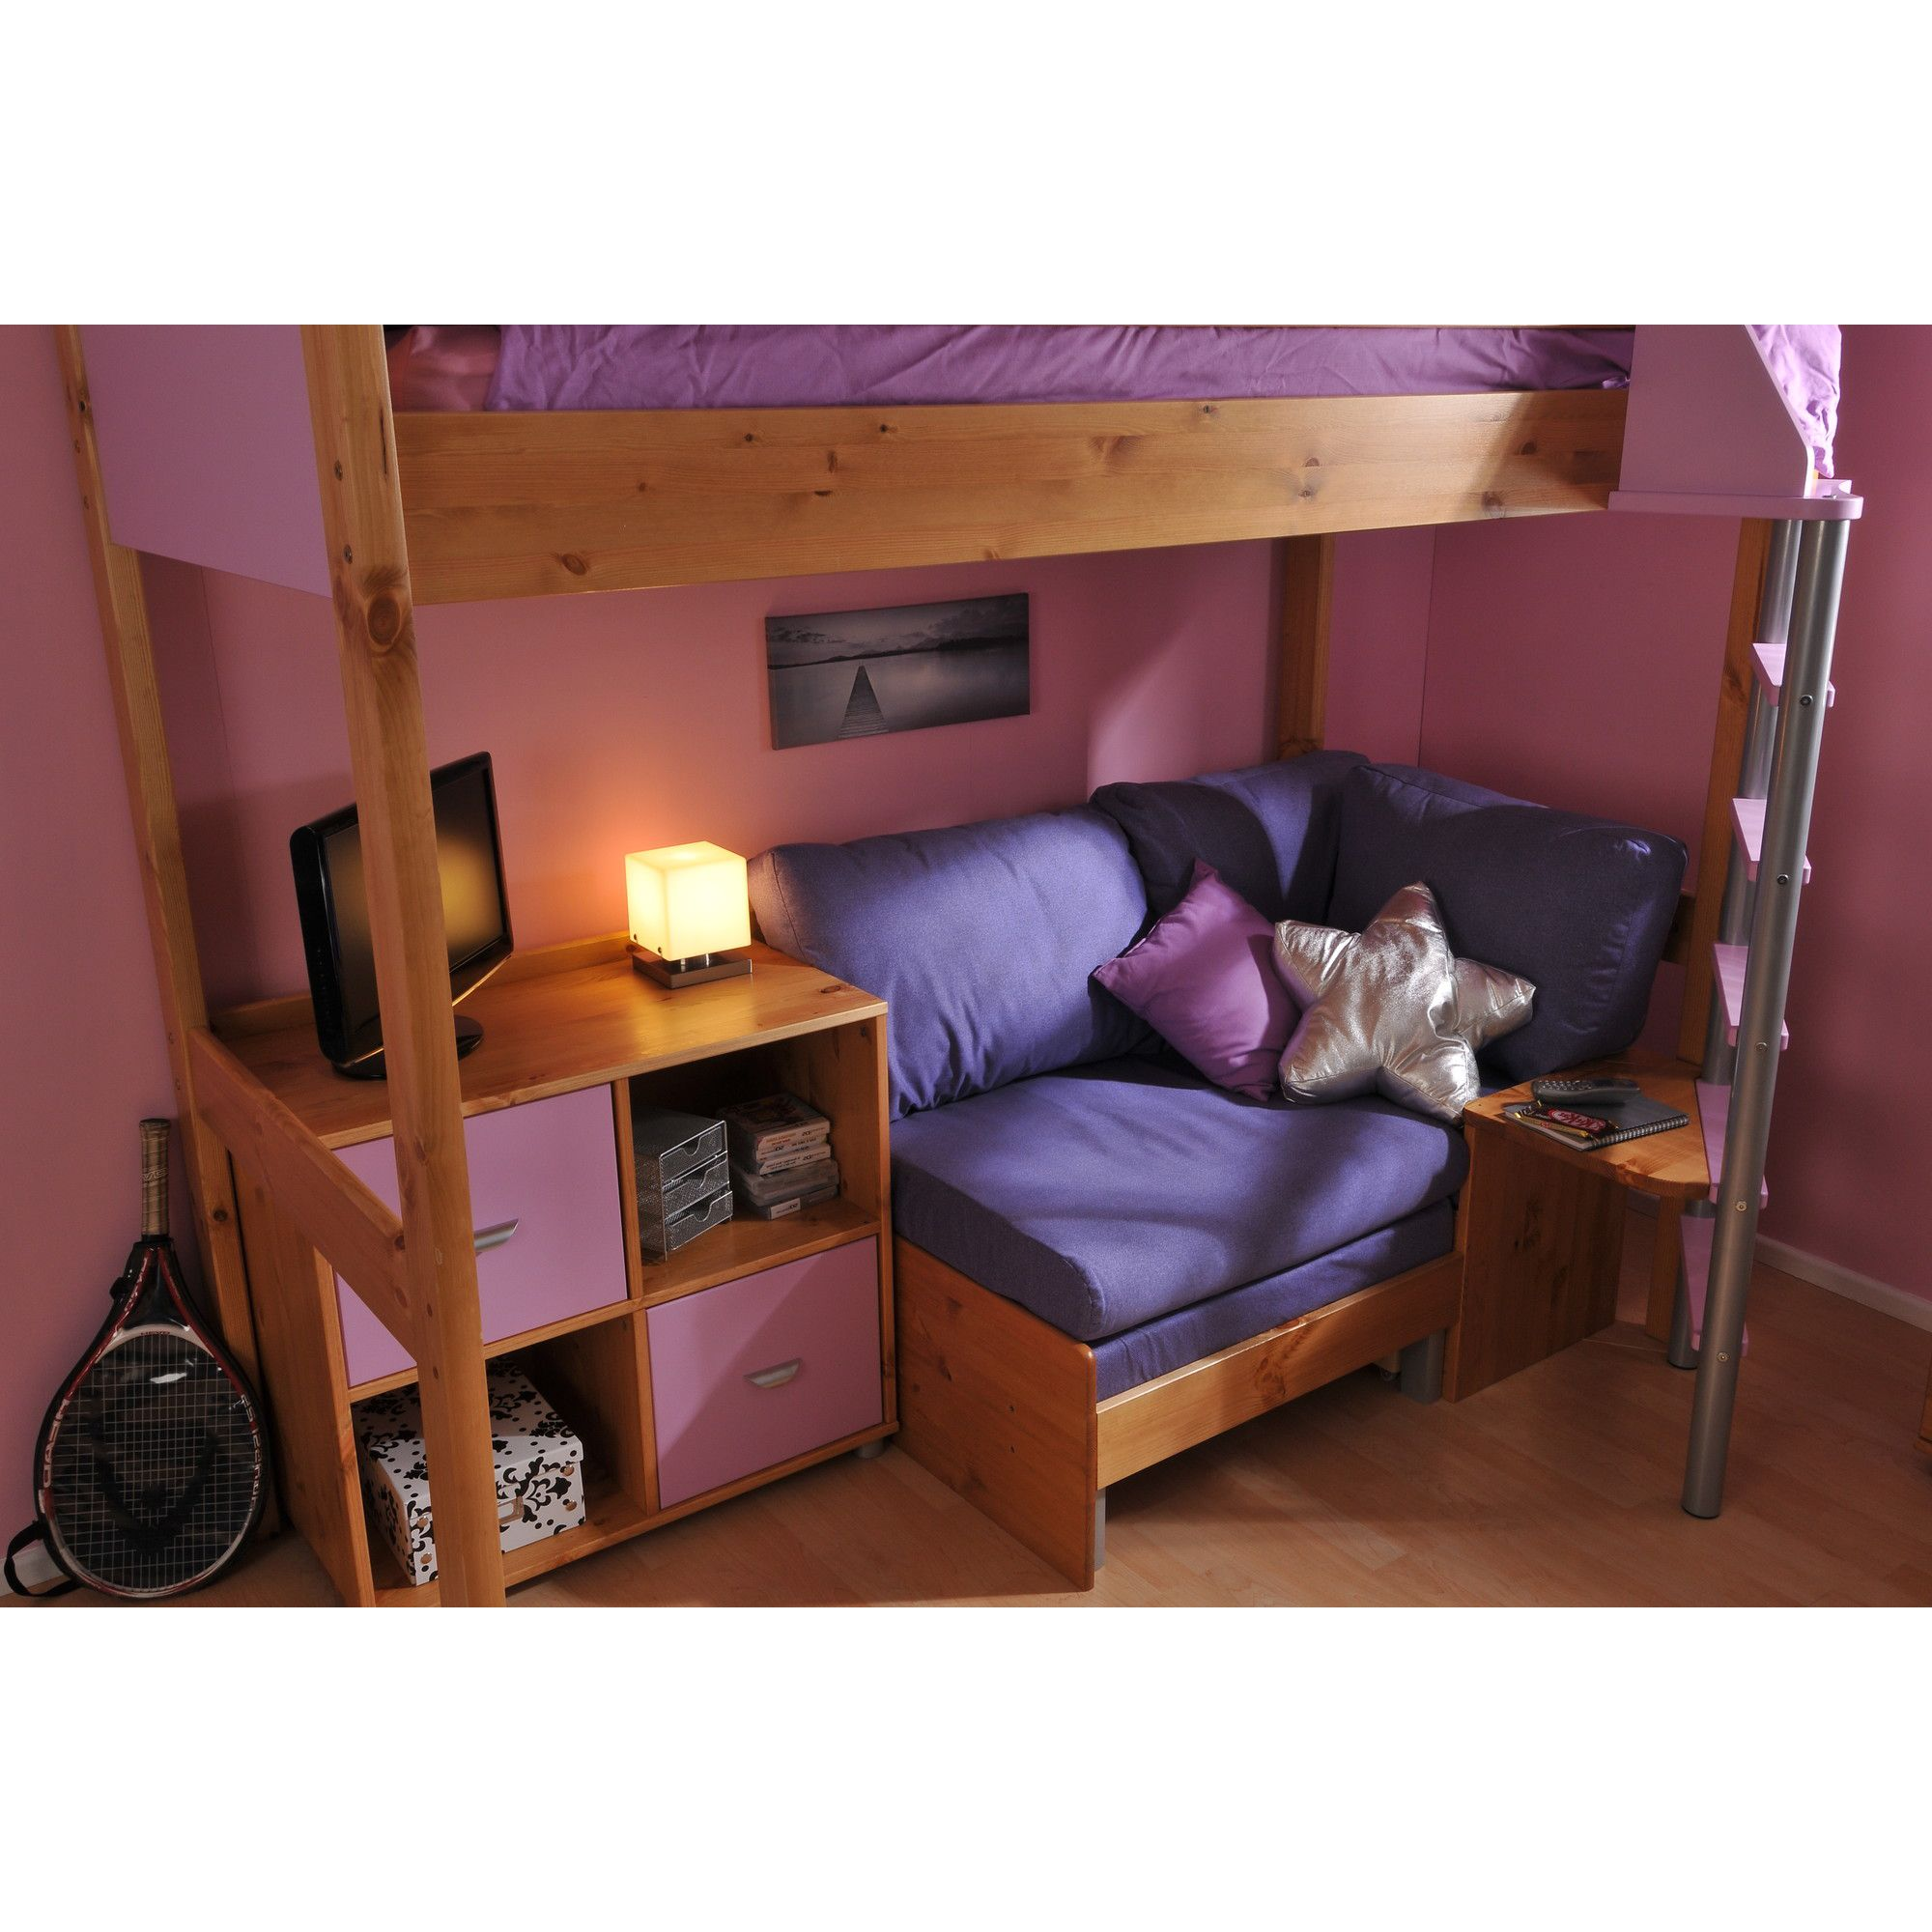 Stompa Casa High Sleeper Sofa Bed with 4 Cube Unit - Antique - Black - Lilac at Tesco Direct